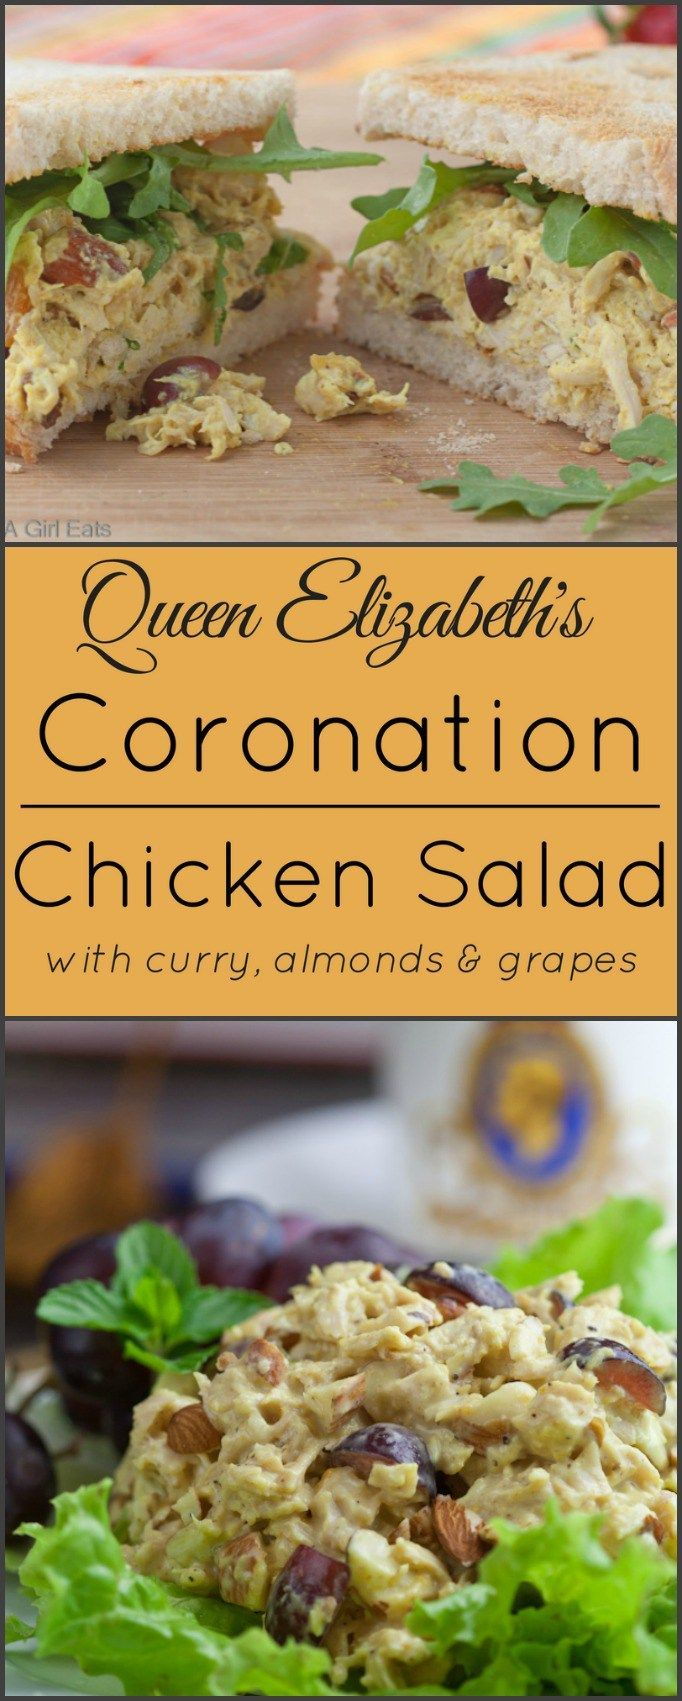 Coronation Chicken Salad is a copy cat version of the recipe used for Queen Elizabeth's coronation. (Favorite Pins Food Drink)